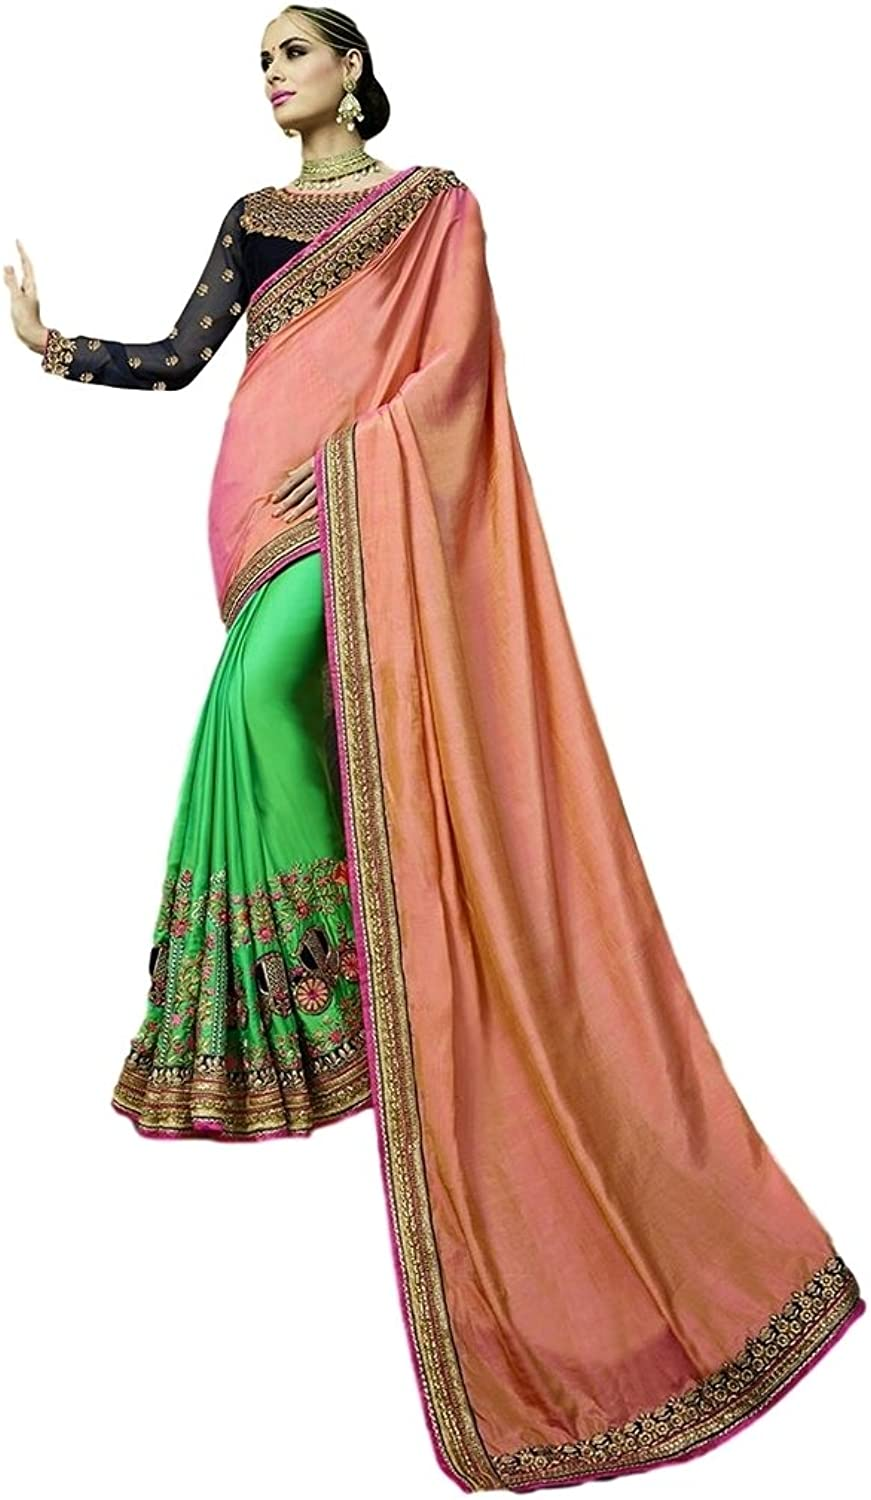 EthnicWear Green Peach PartyWear Designer Hot Selling Half n Half Crape Silk Stone Work Party Wedding Saris